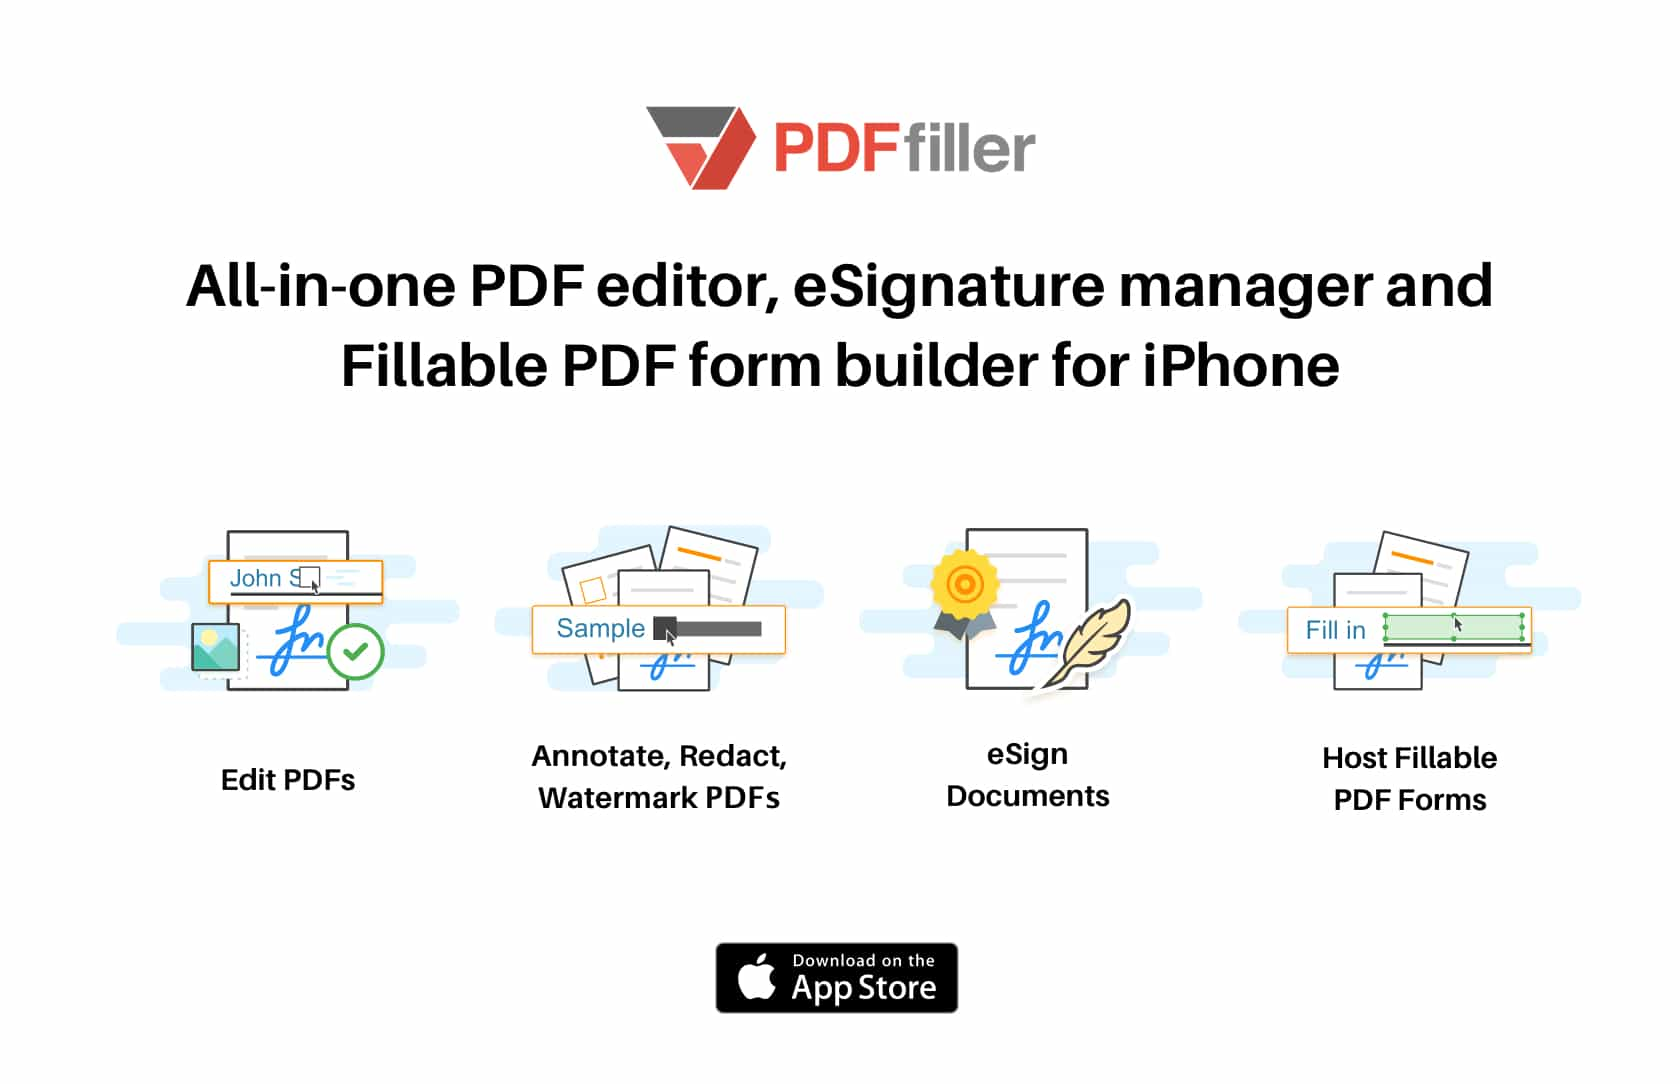 Make quick work of PDFs with PDFfiller on your iPhone.